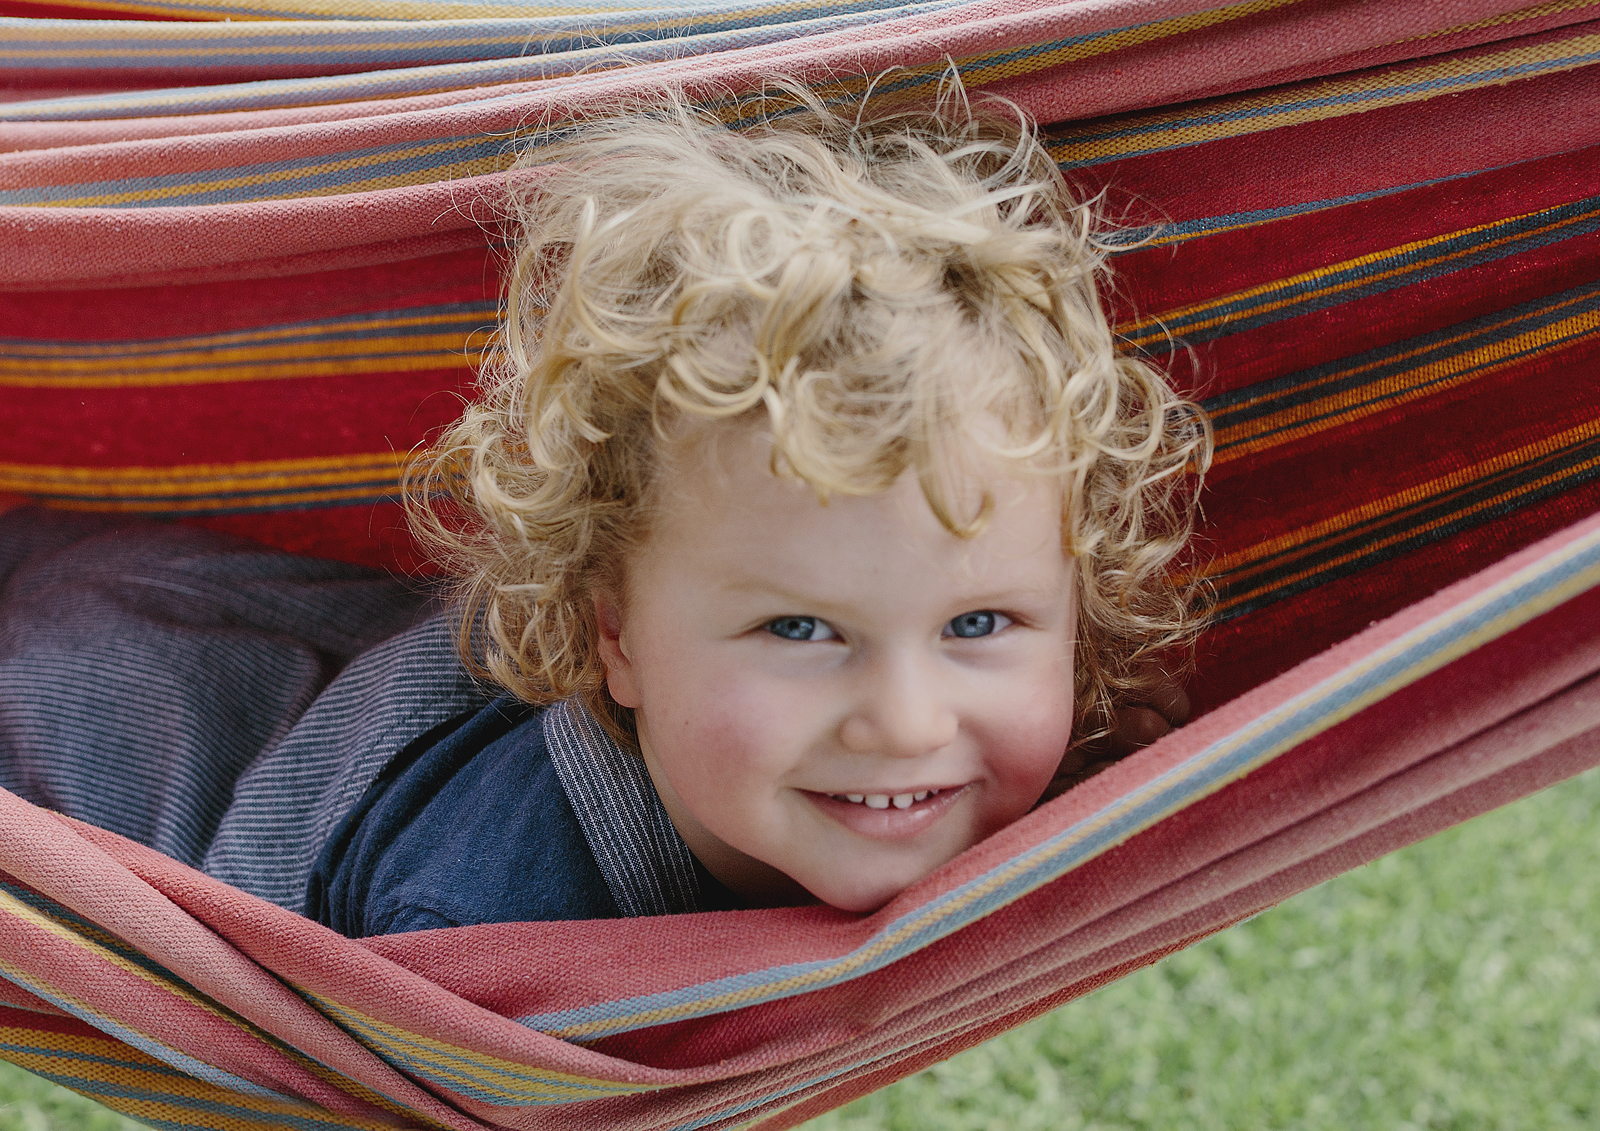 Toddler playing in the hammock